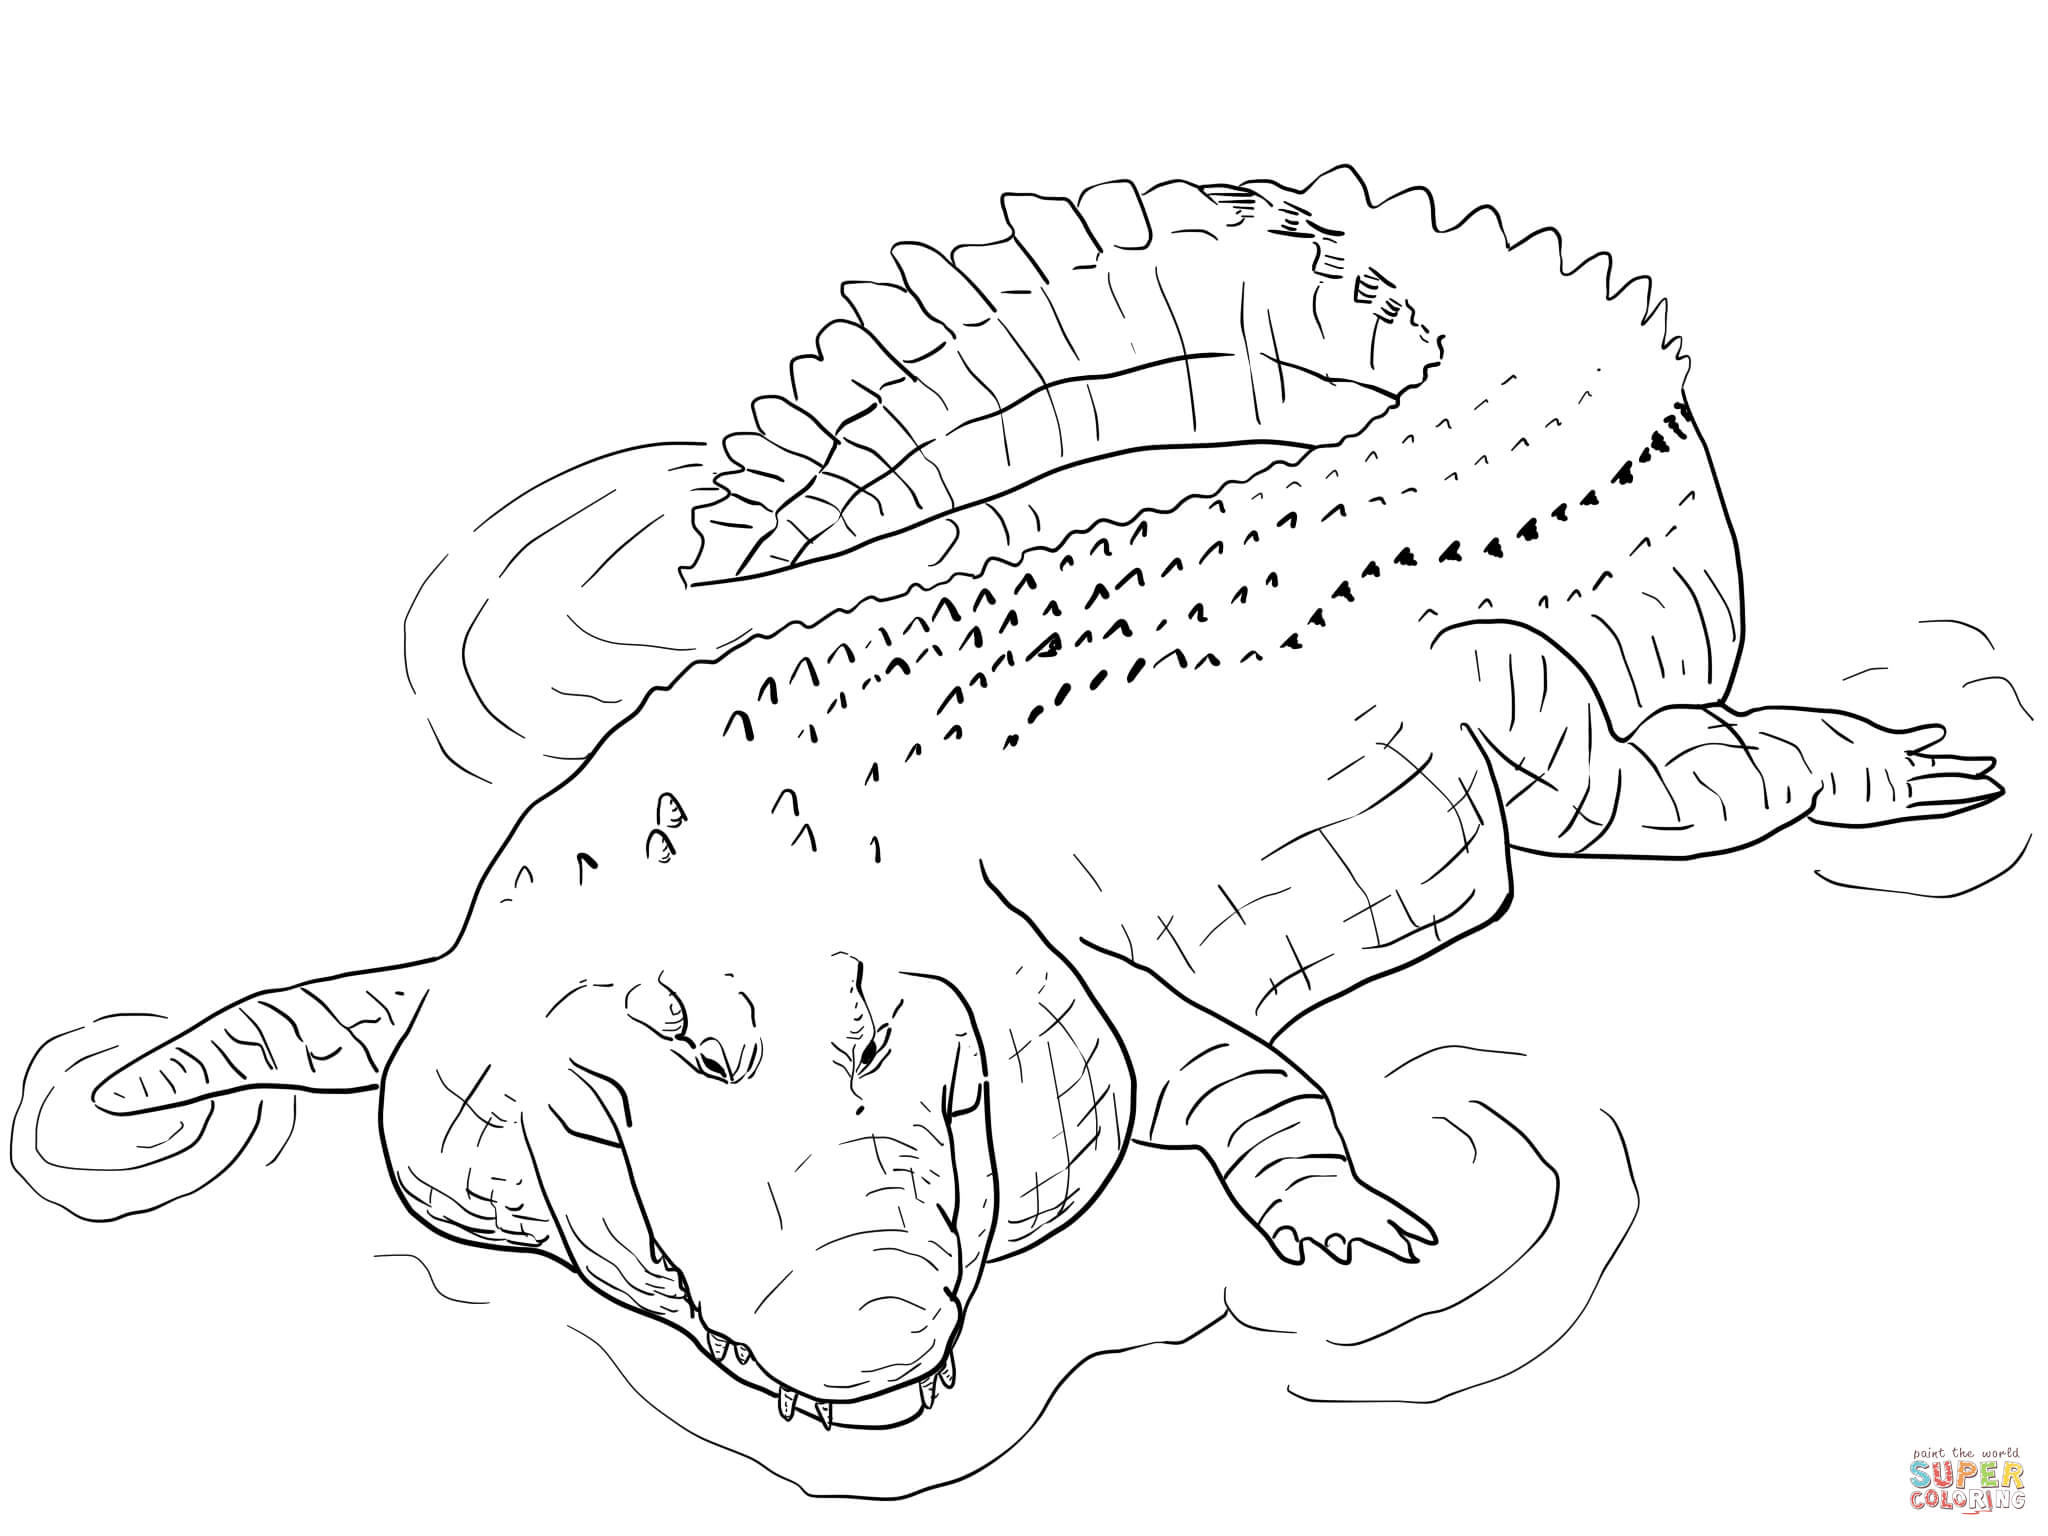 crocodile coloring pages to print alligator coloring page art starts crocodile coloring to pages print